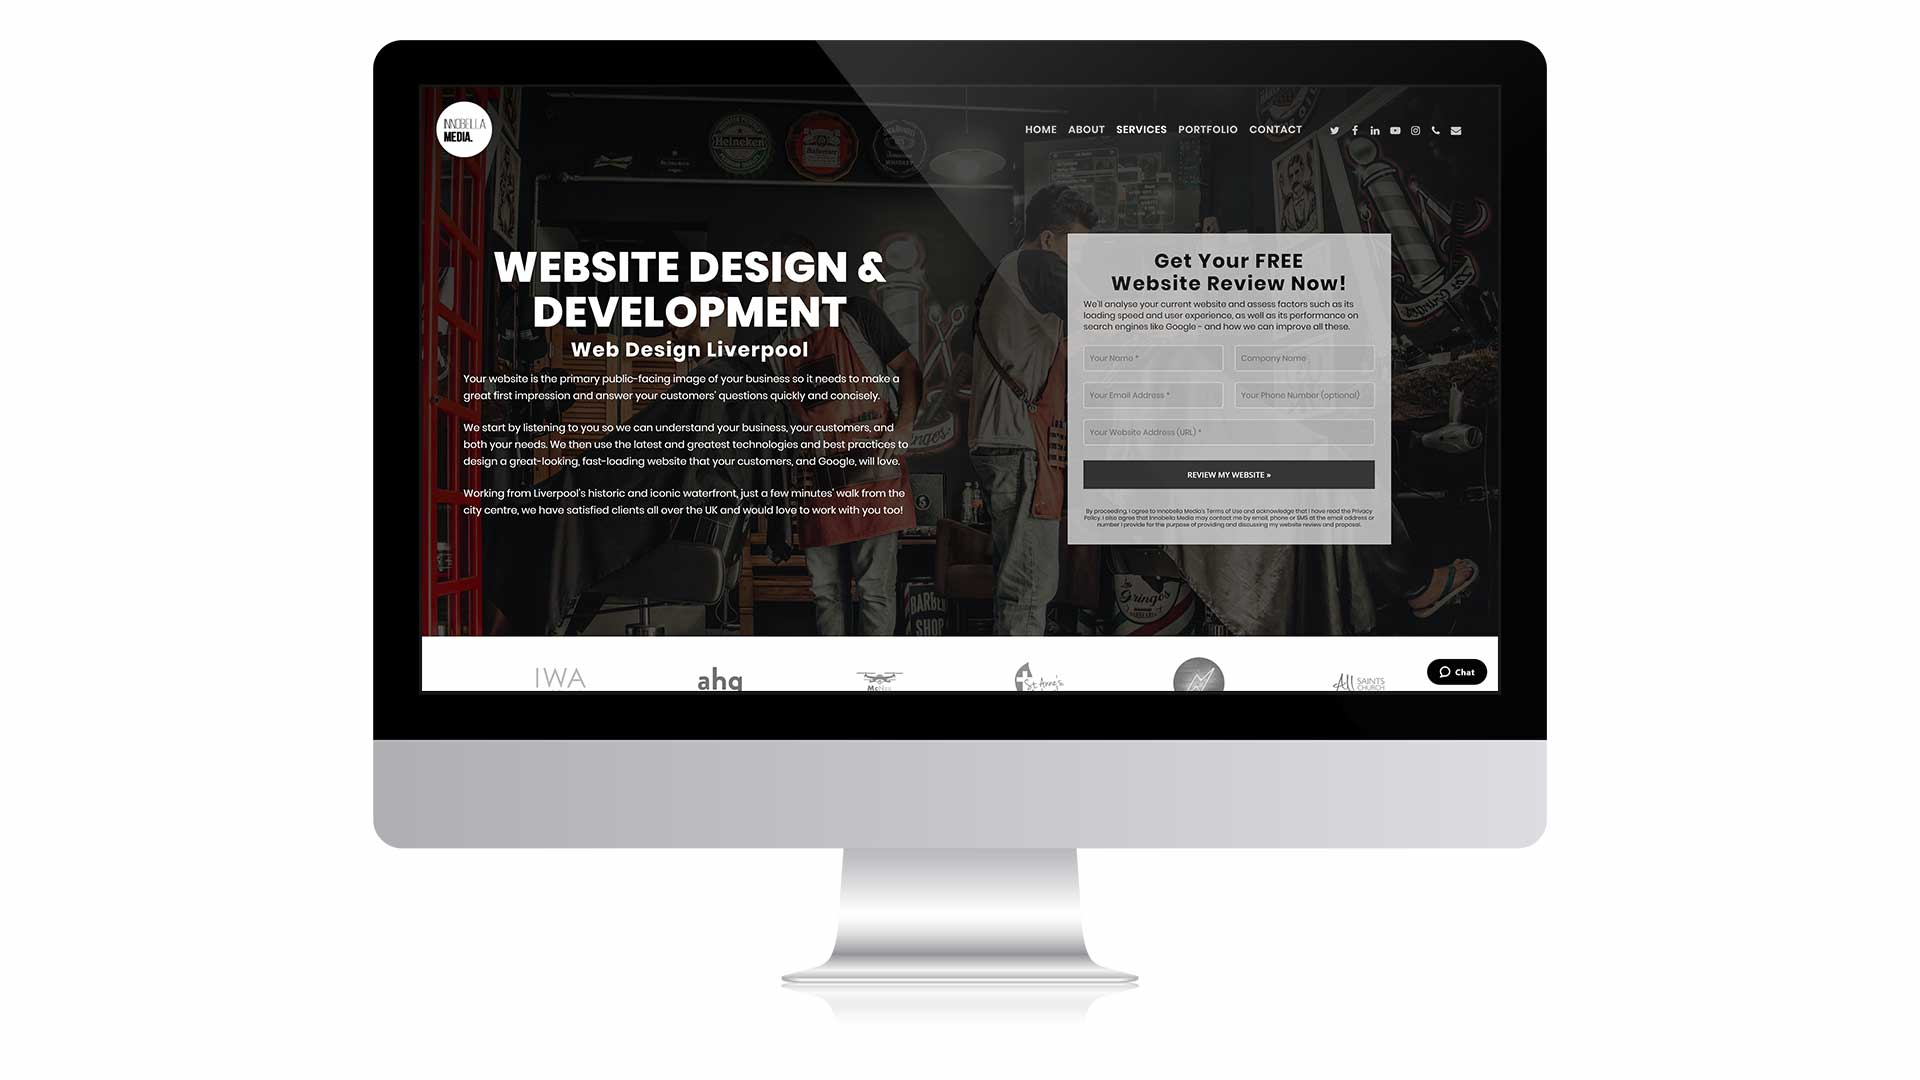 Web Design page on monitor